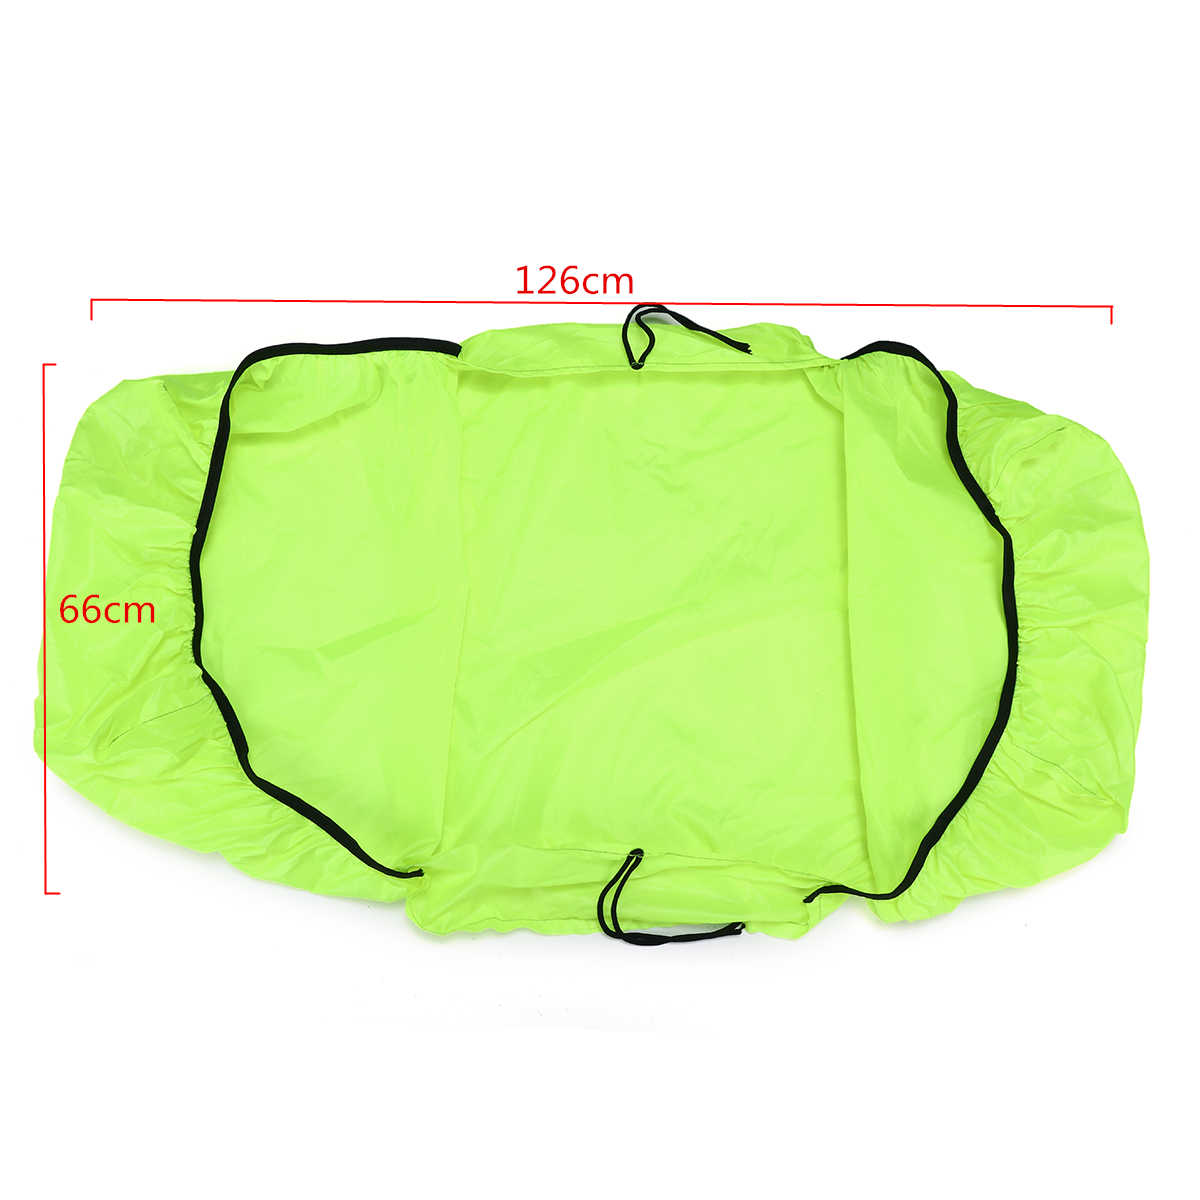 Rear Bicycle Waterproof Silk Ultralight Foldable Protective Pannier Rain Cover